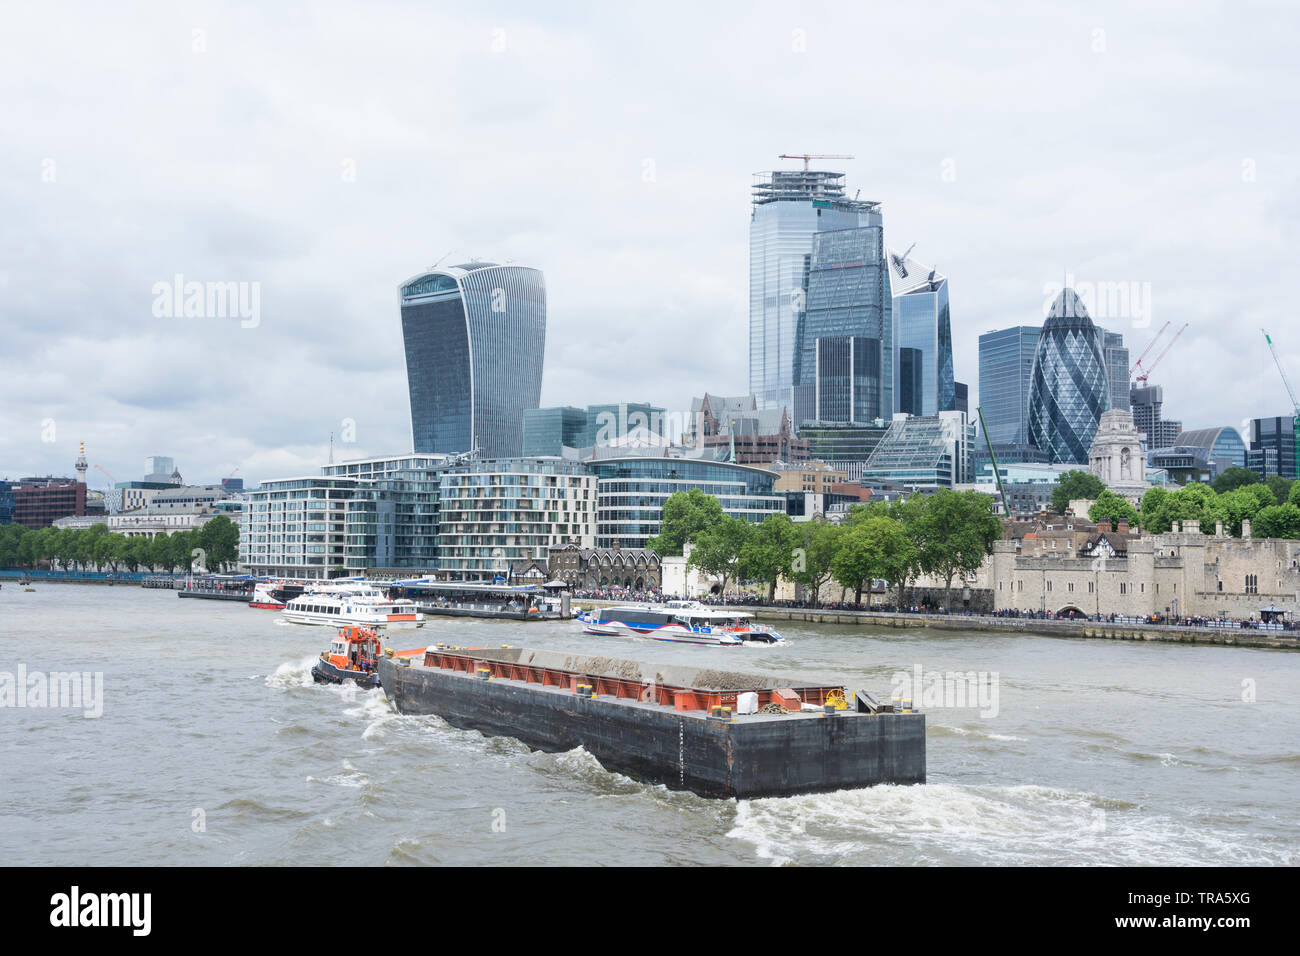 The City of London's ever changing skyline as new skyscrapers are added to the mix - Stock Image